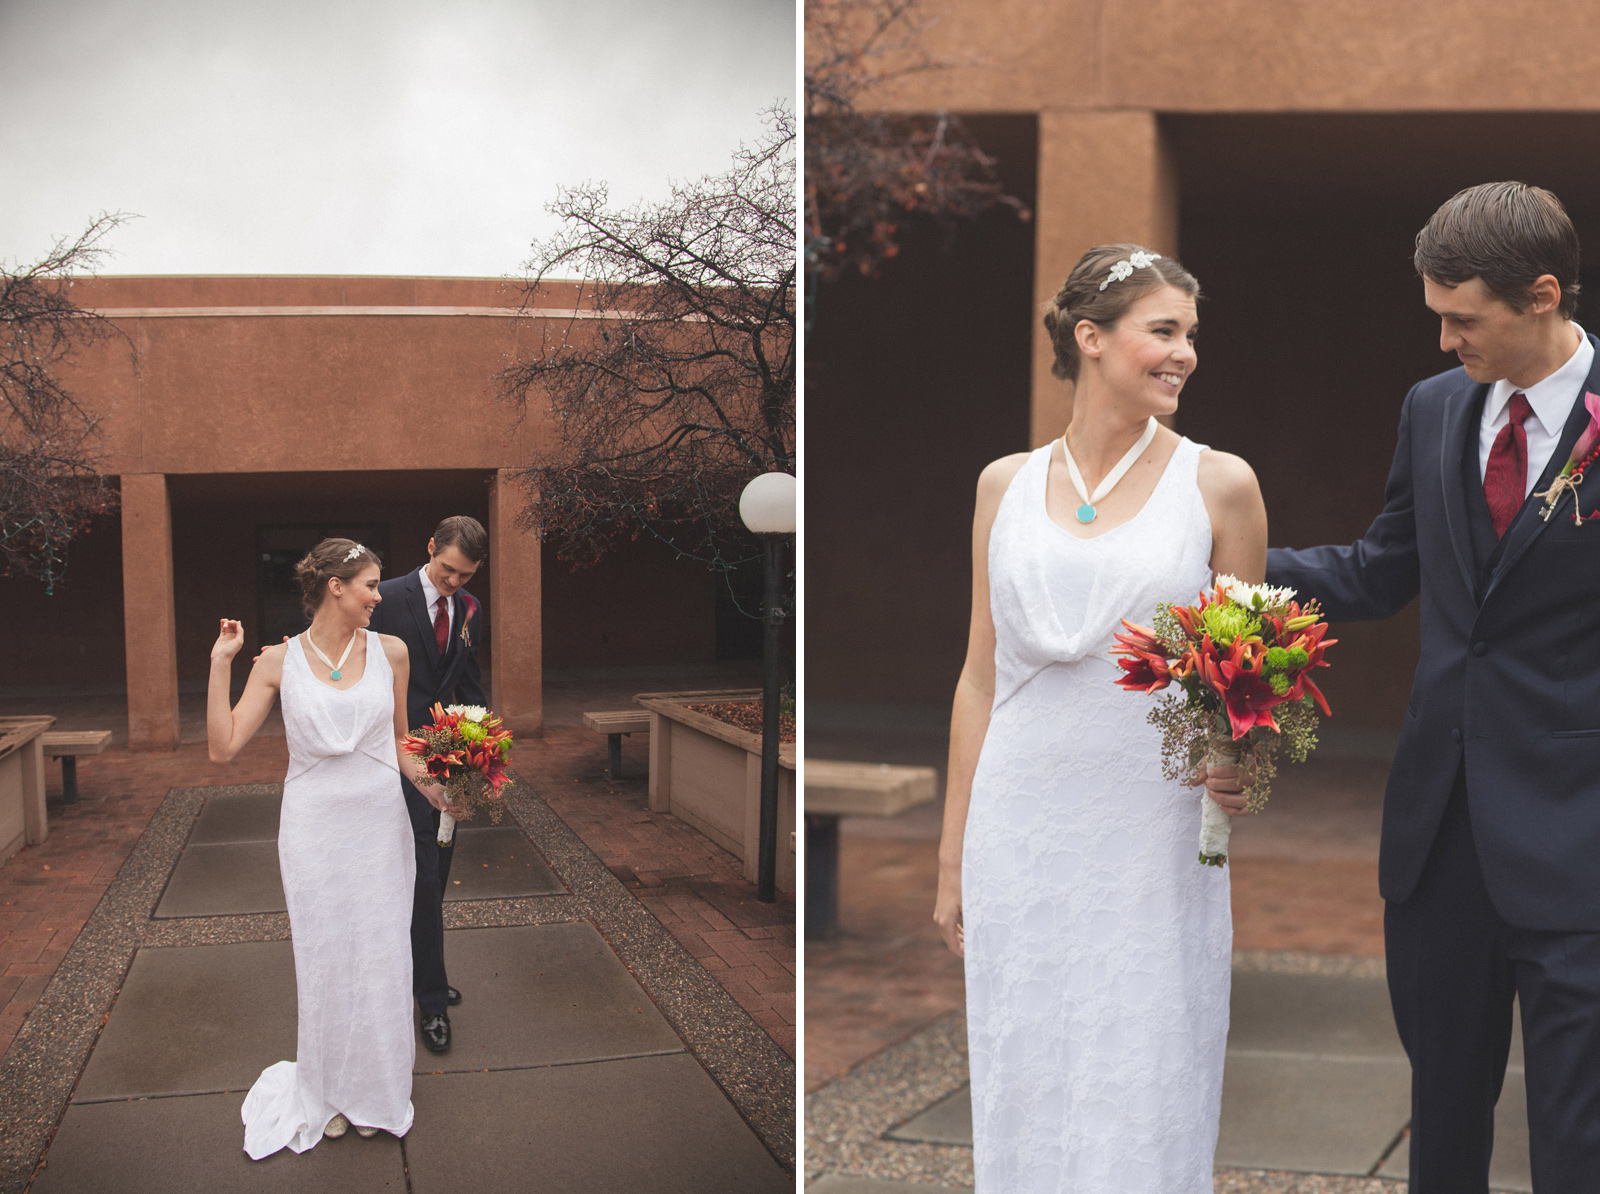 058-bride-and-groom-see-eachother-in-first-look-in-courtyard-before-the-ceremony-in-albuquerque-nm